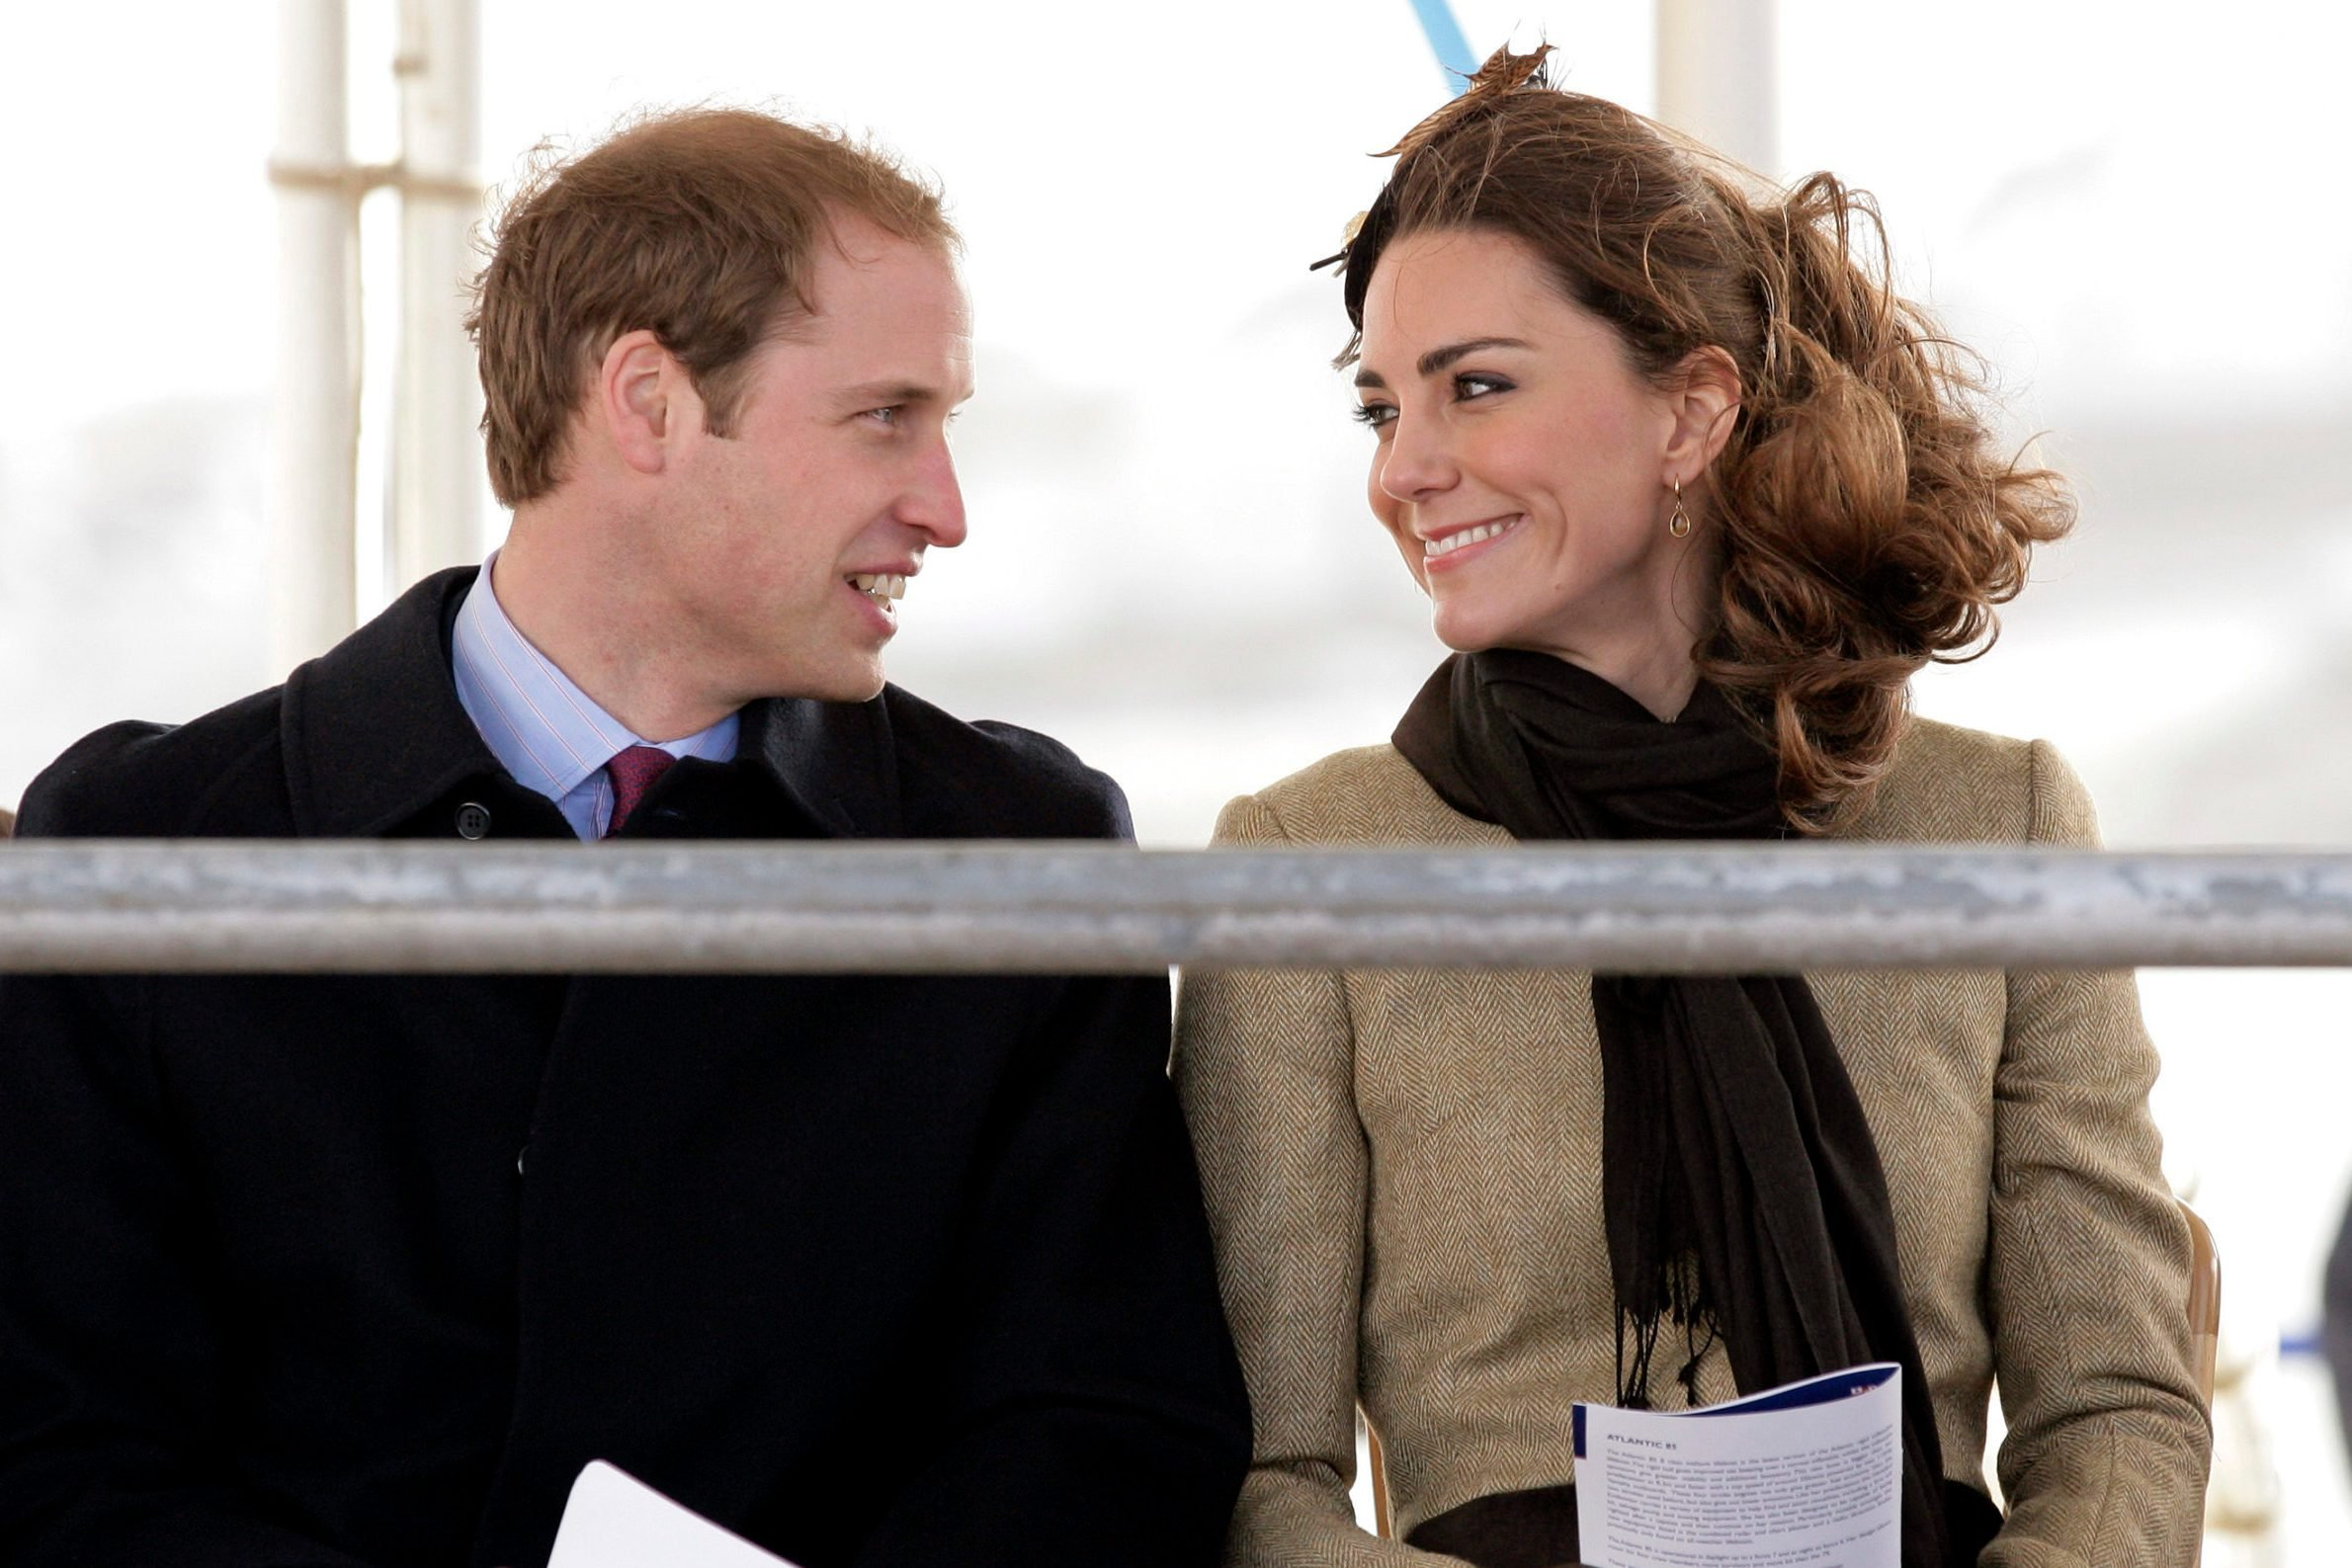 Prince William and Kate Middleton visit Trearddur Bay RNLI Lifeboat Station